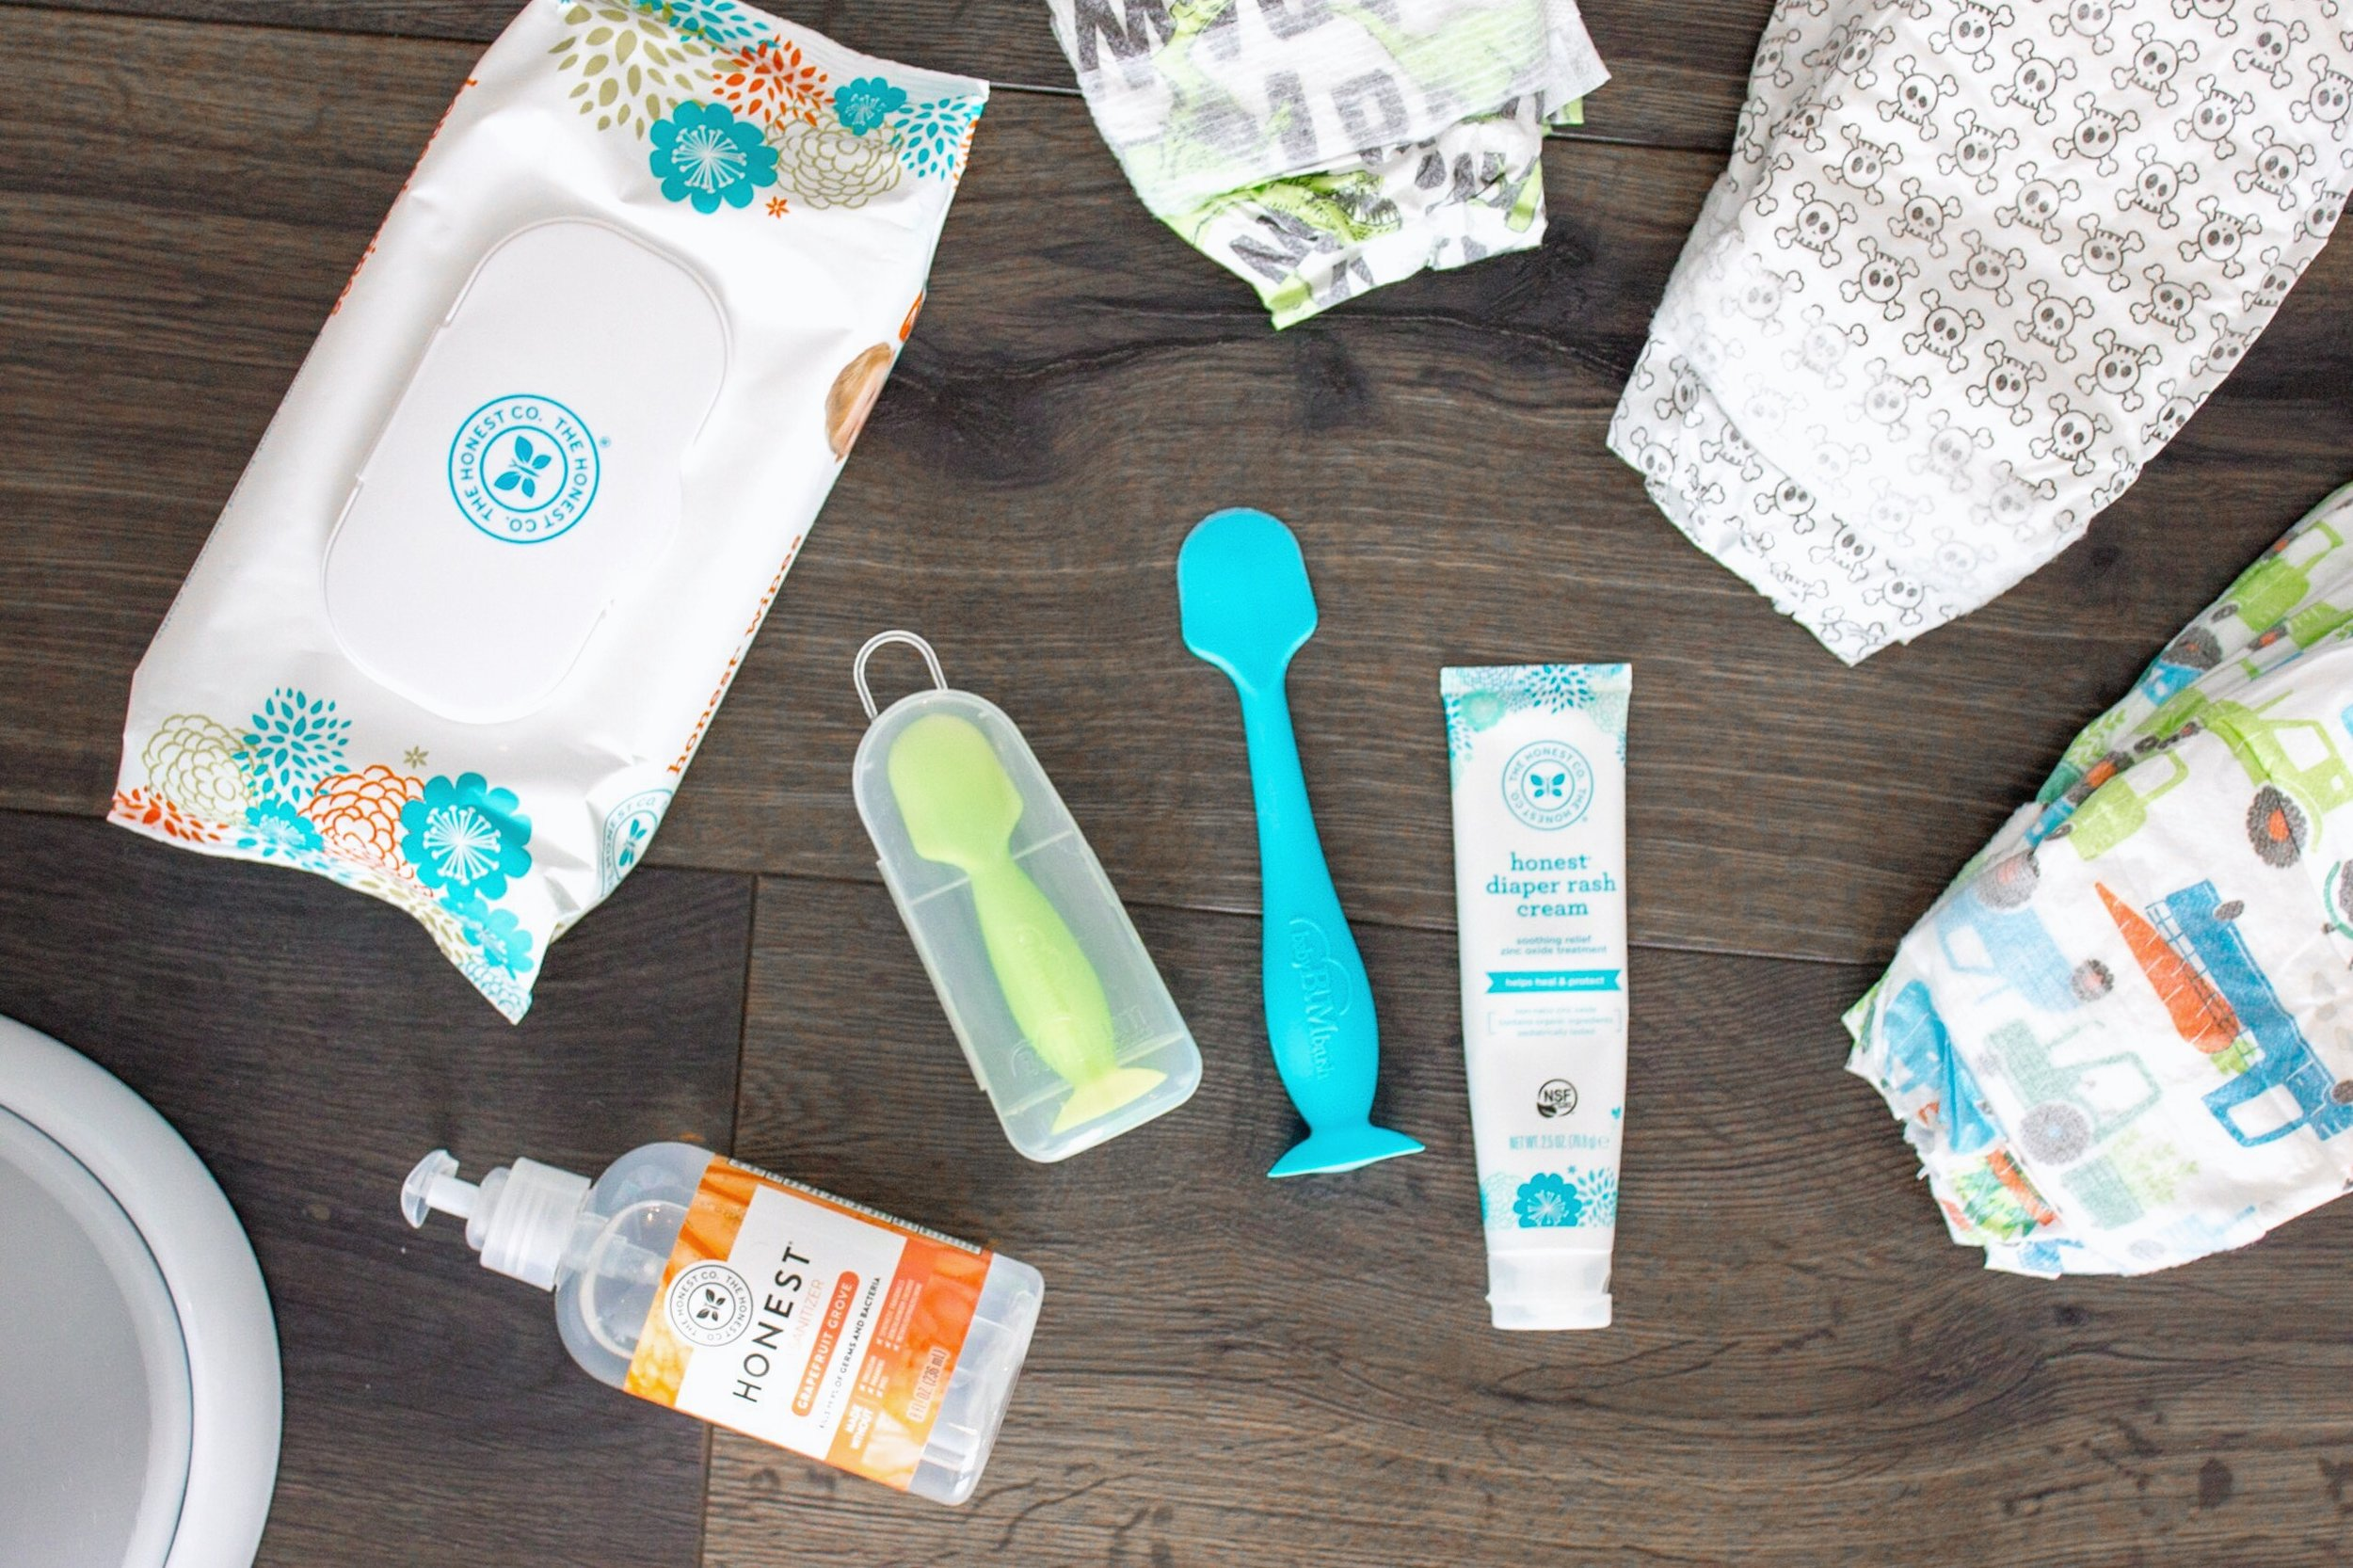 Ubbi Diaper Pail // BabyBum Diaper Cream Brush // Honest Wipes